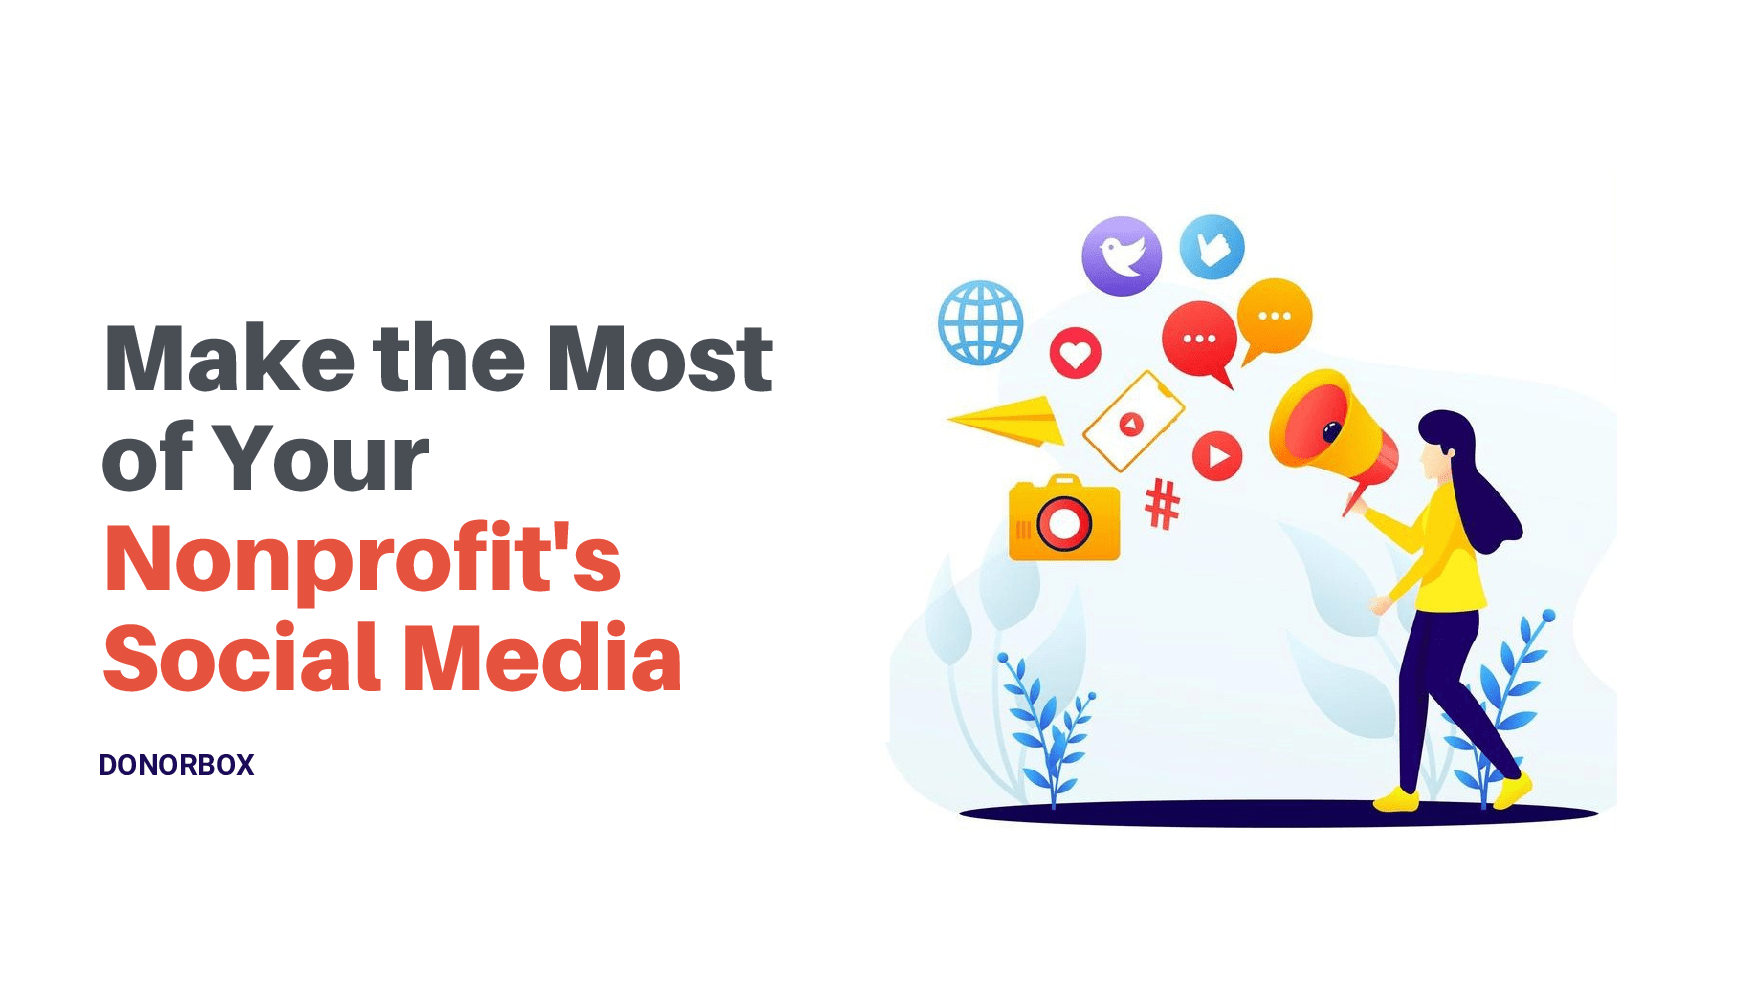 Make the Most of Your Nonprofit's Social Media: The Get-Started Guide